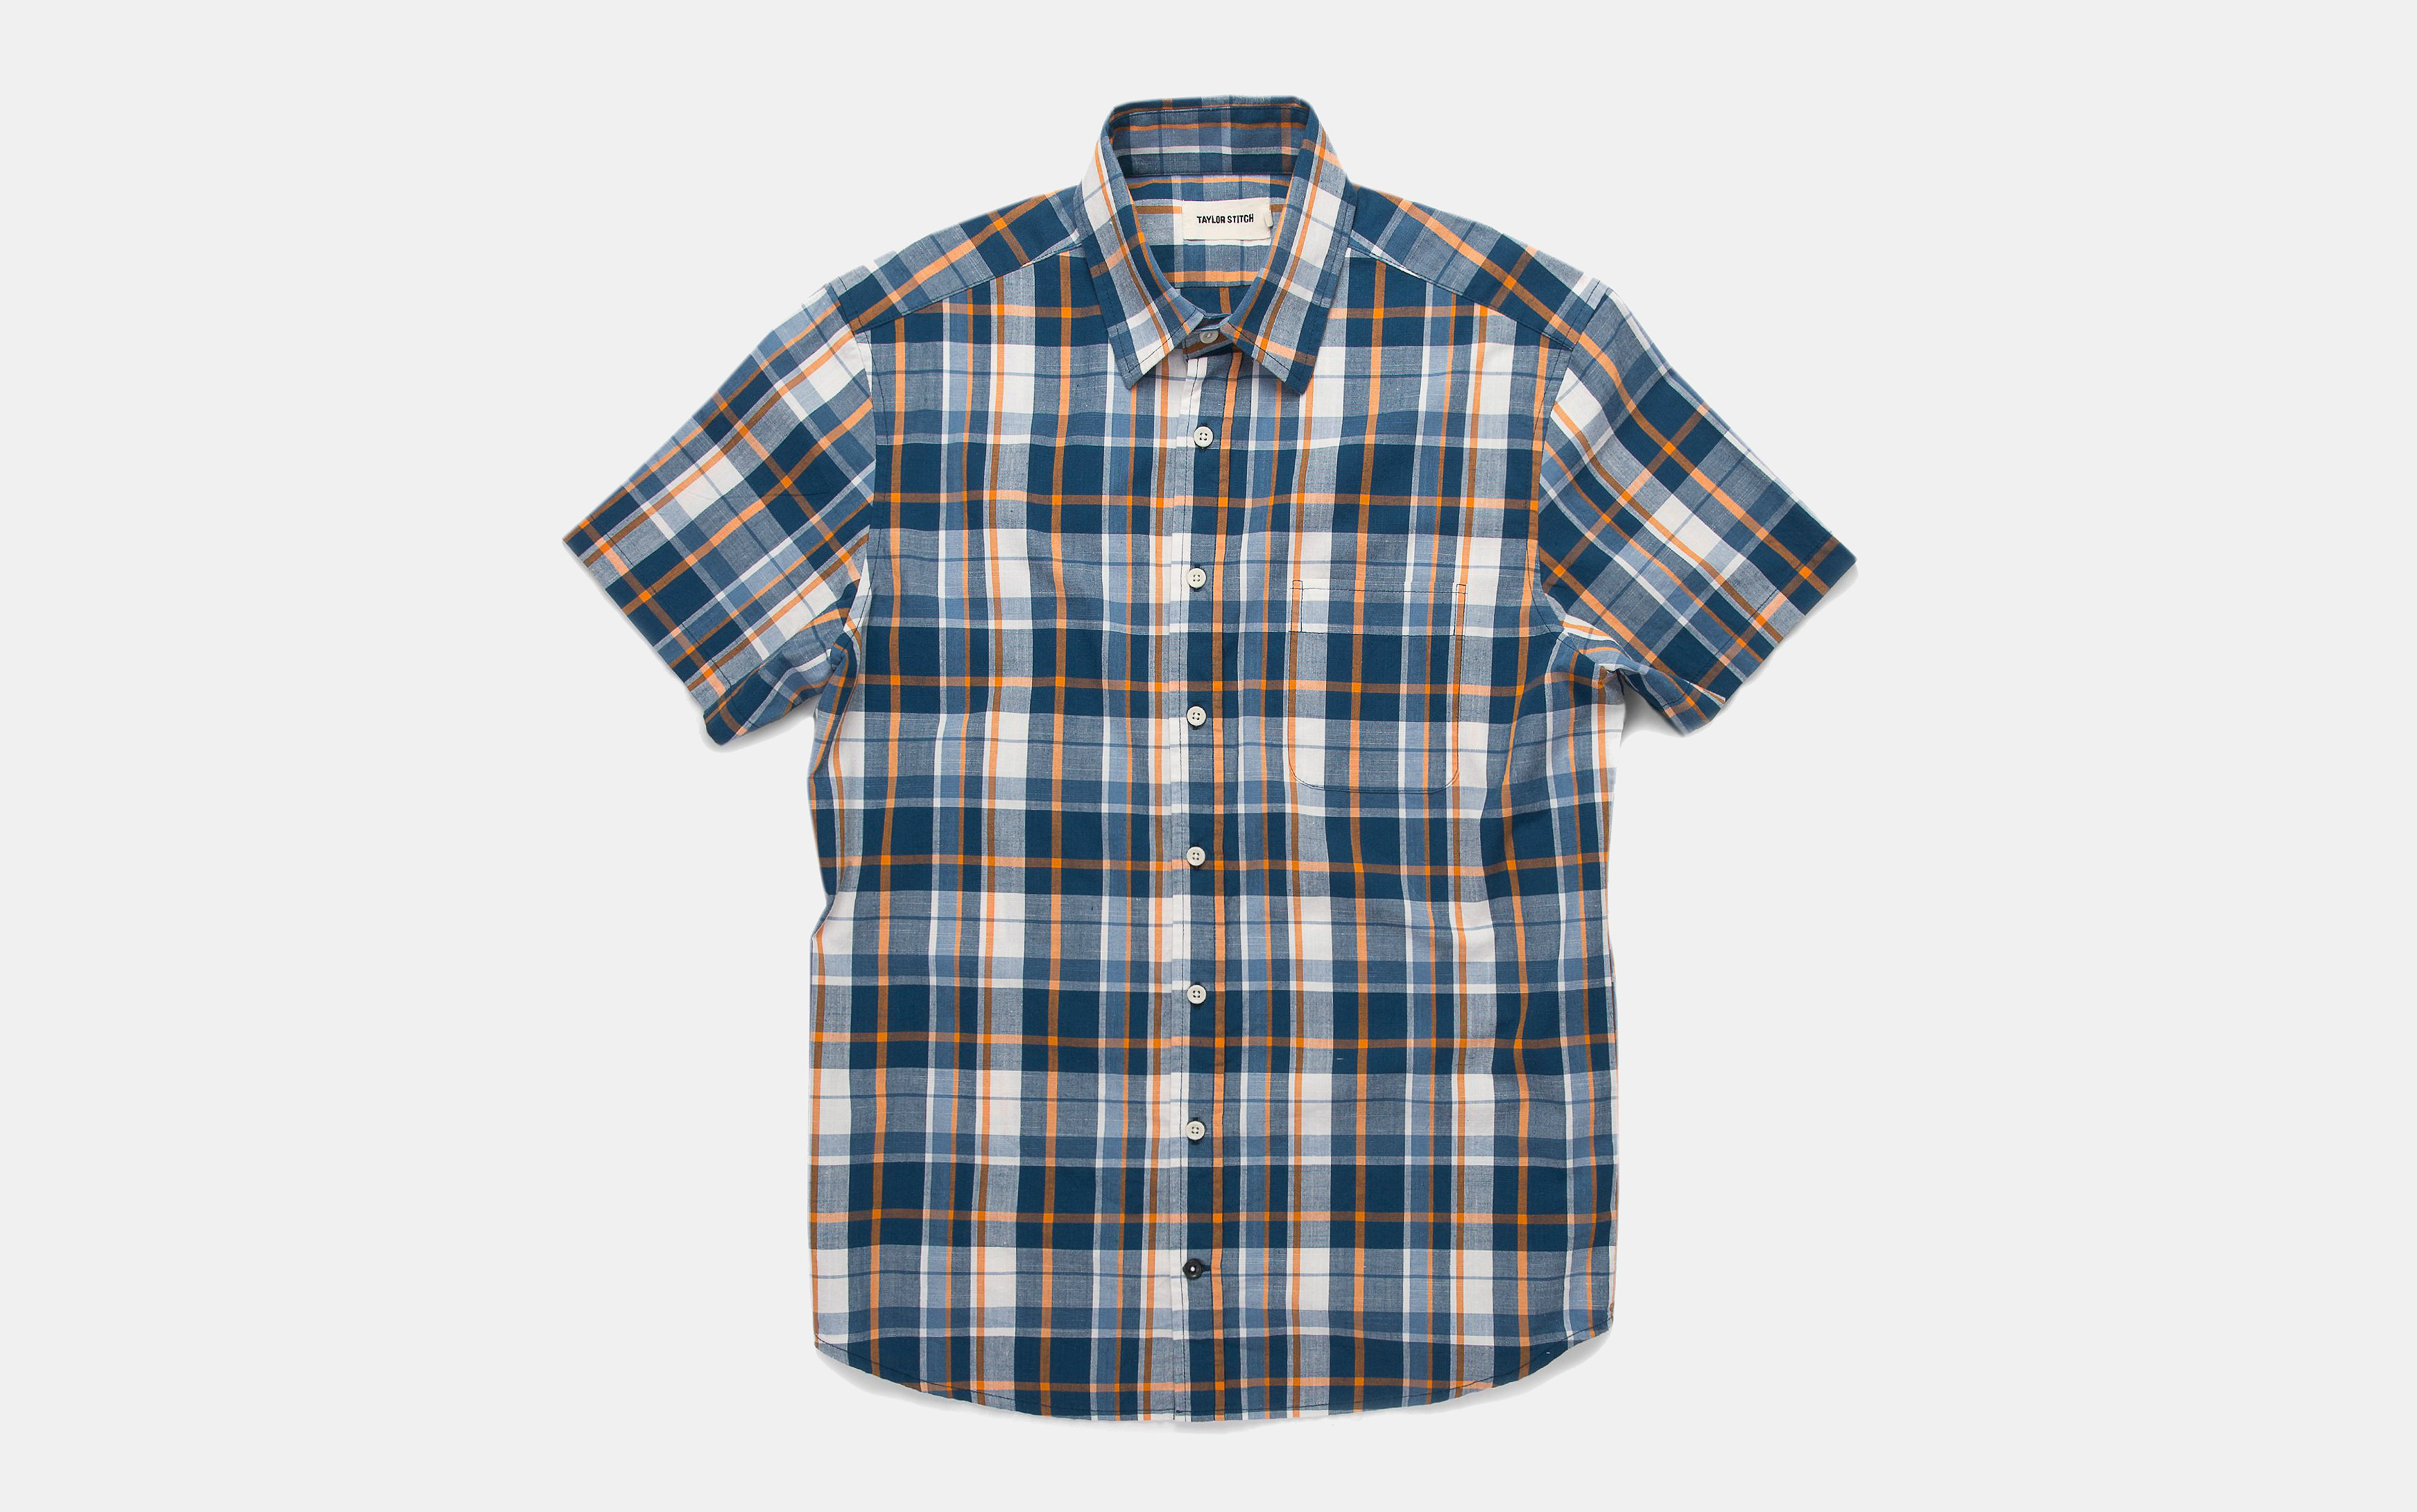 Taylor Stitch Short Sleeve California in Blue Madras